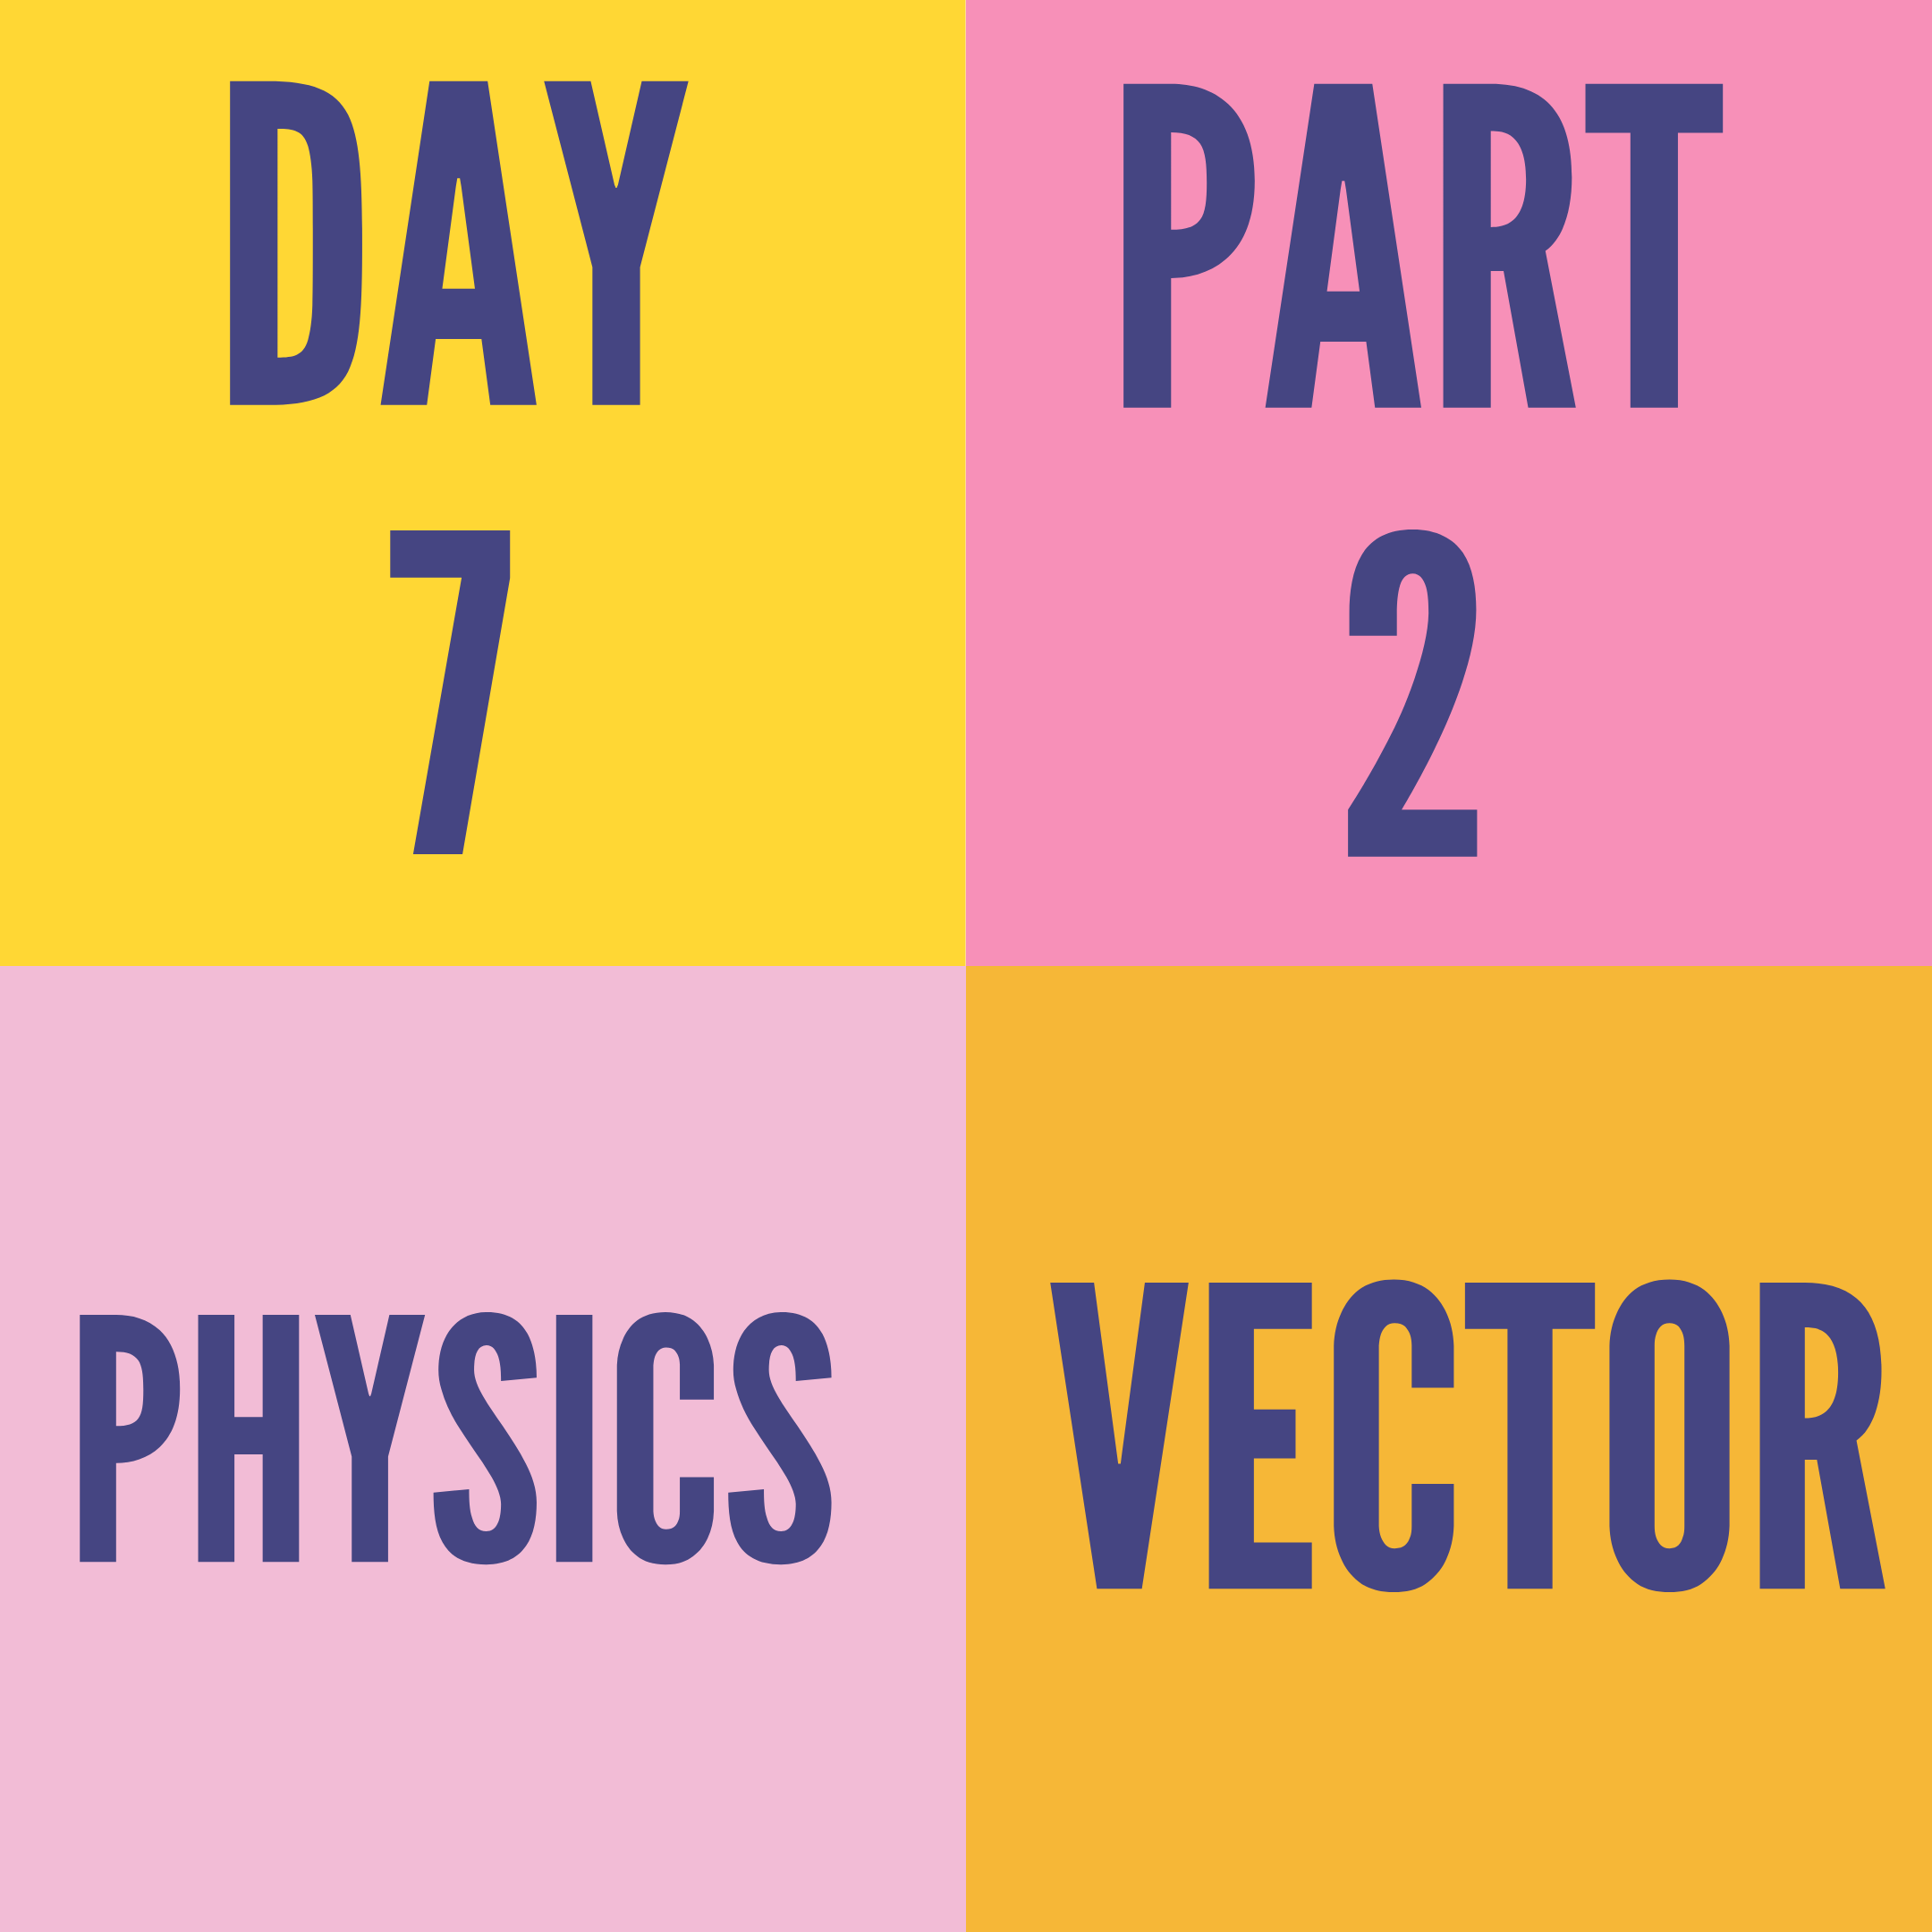 DAY-7 PART-2 VECTOR